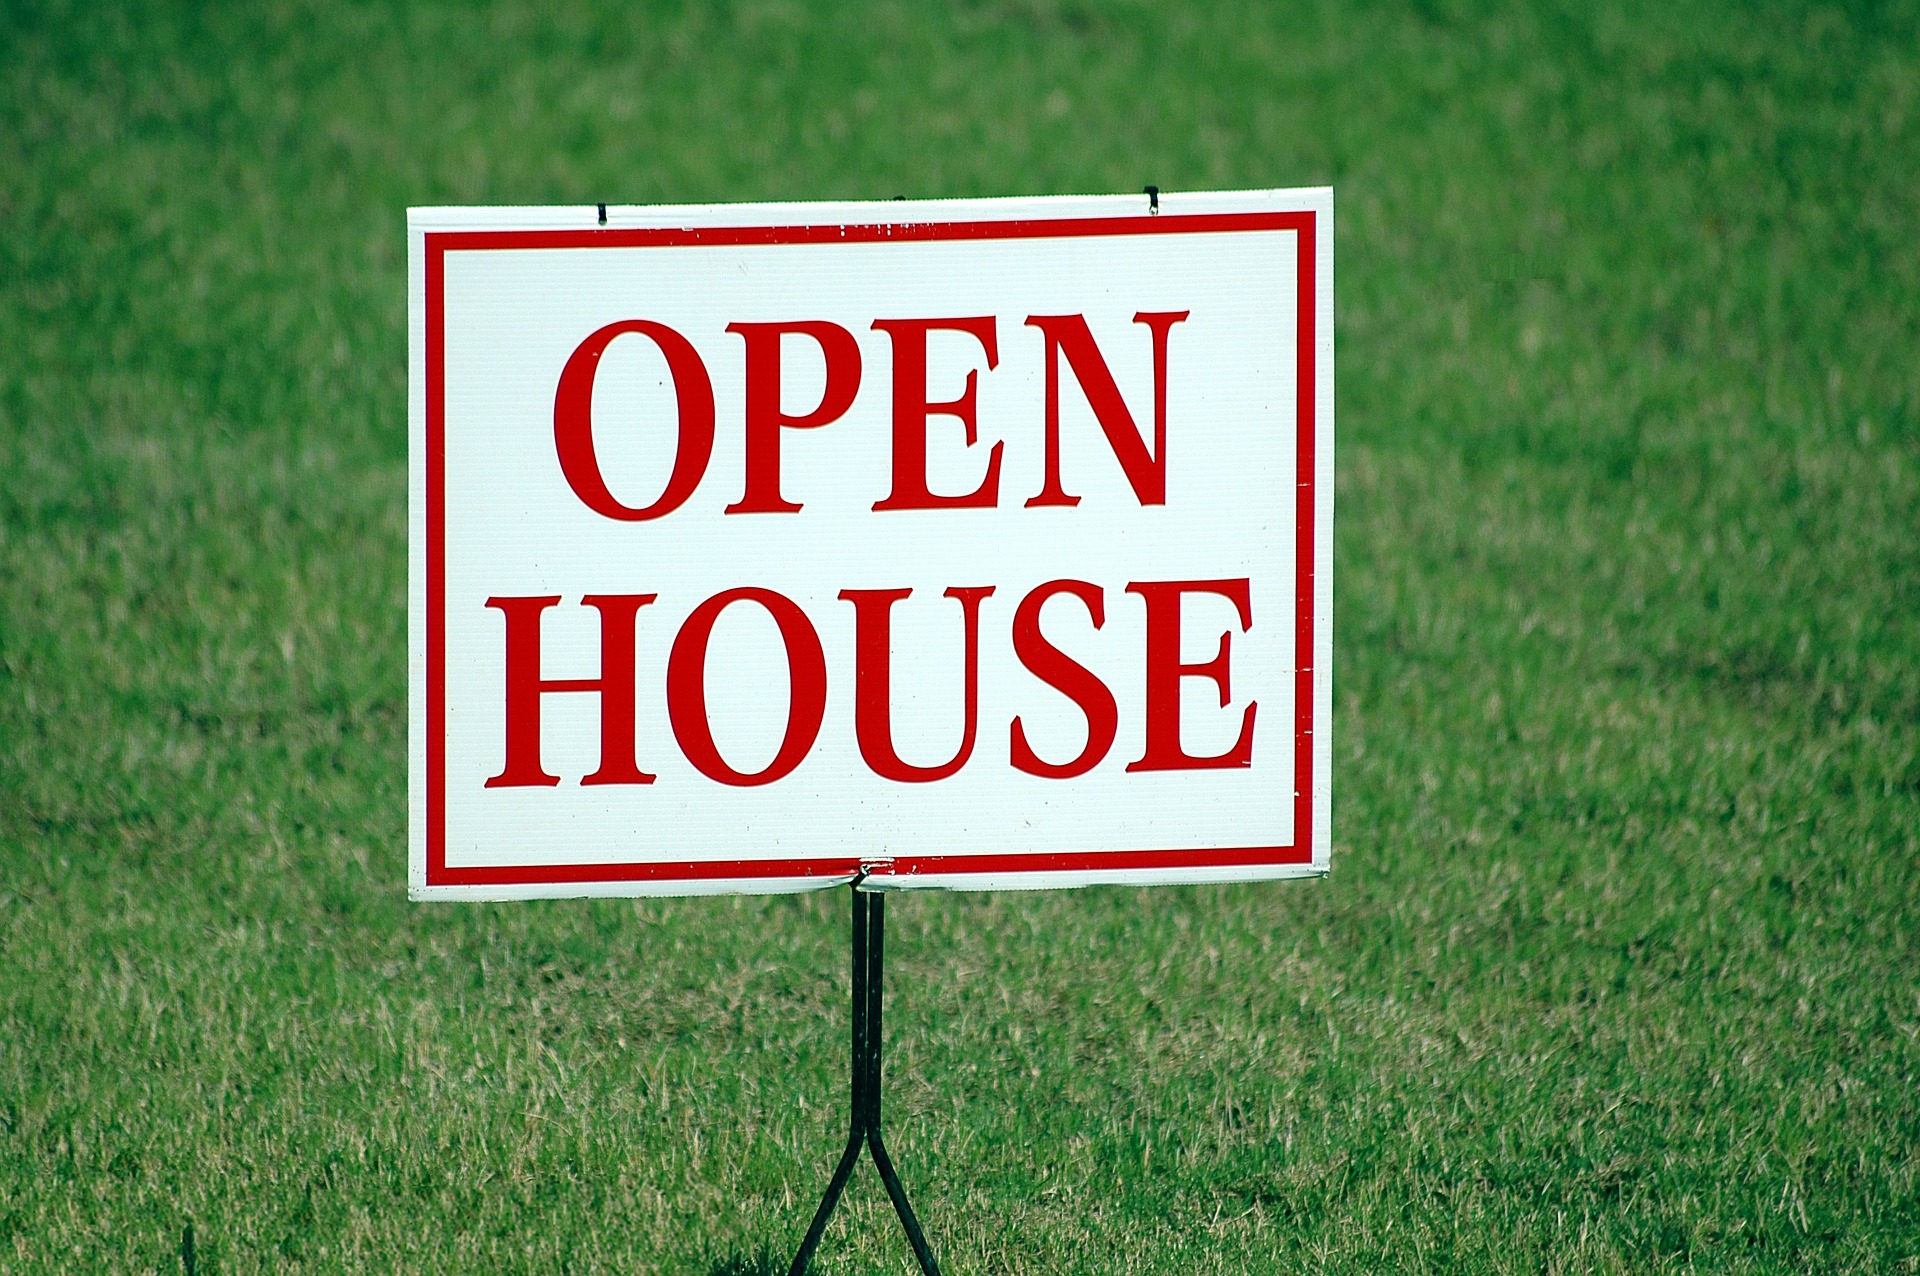 Open House - Voila | Real Estate Done Right